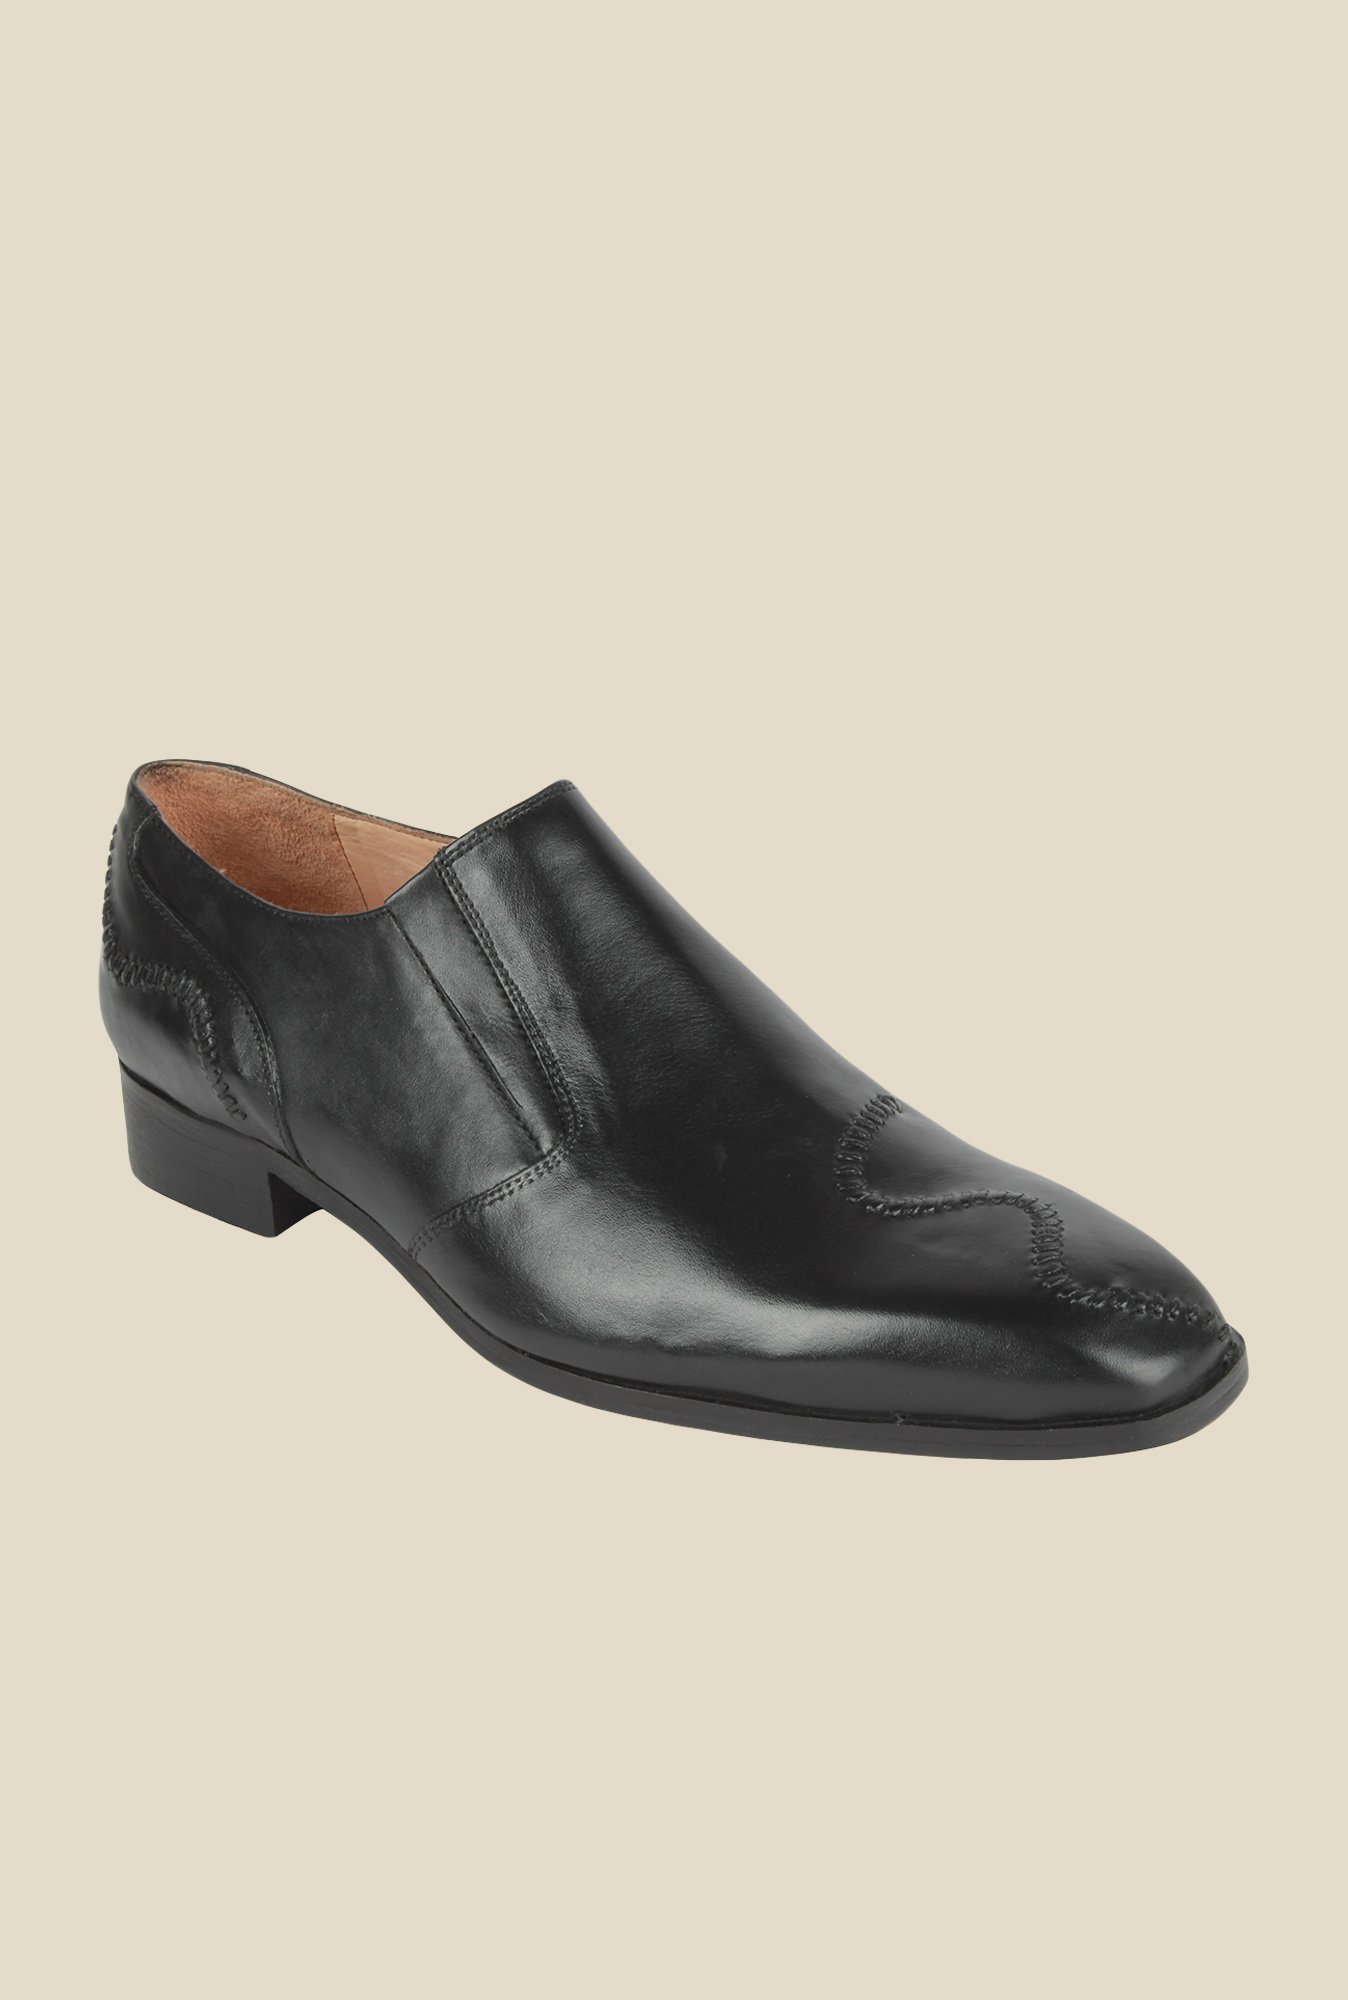 Salt 'n' Pepper Arman Black Formal Shoes